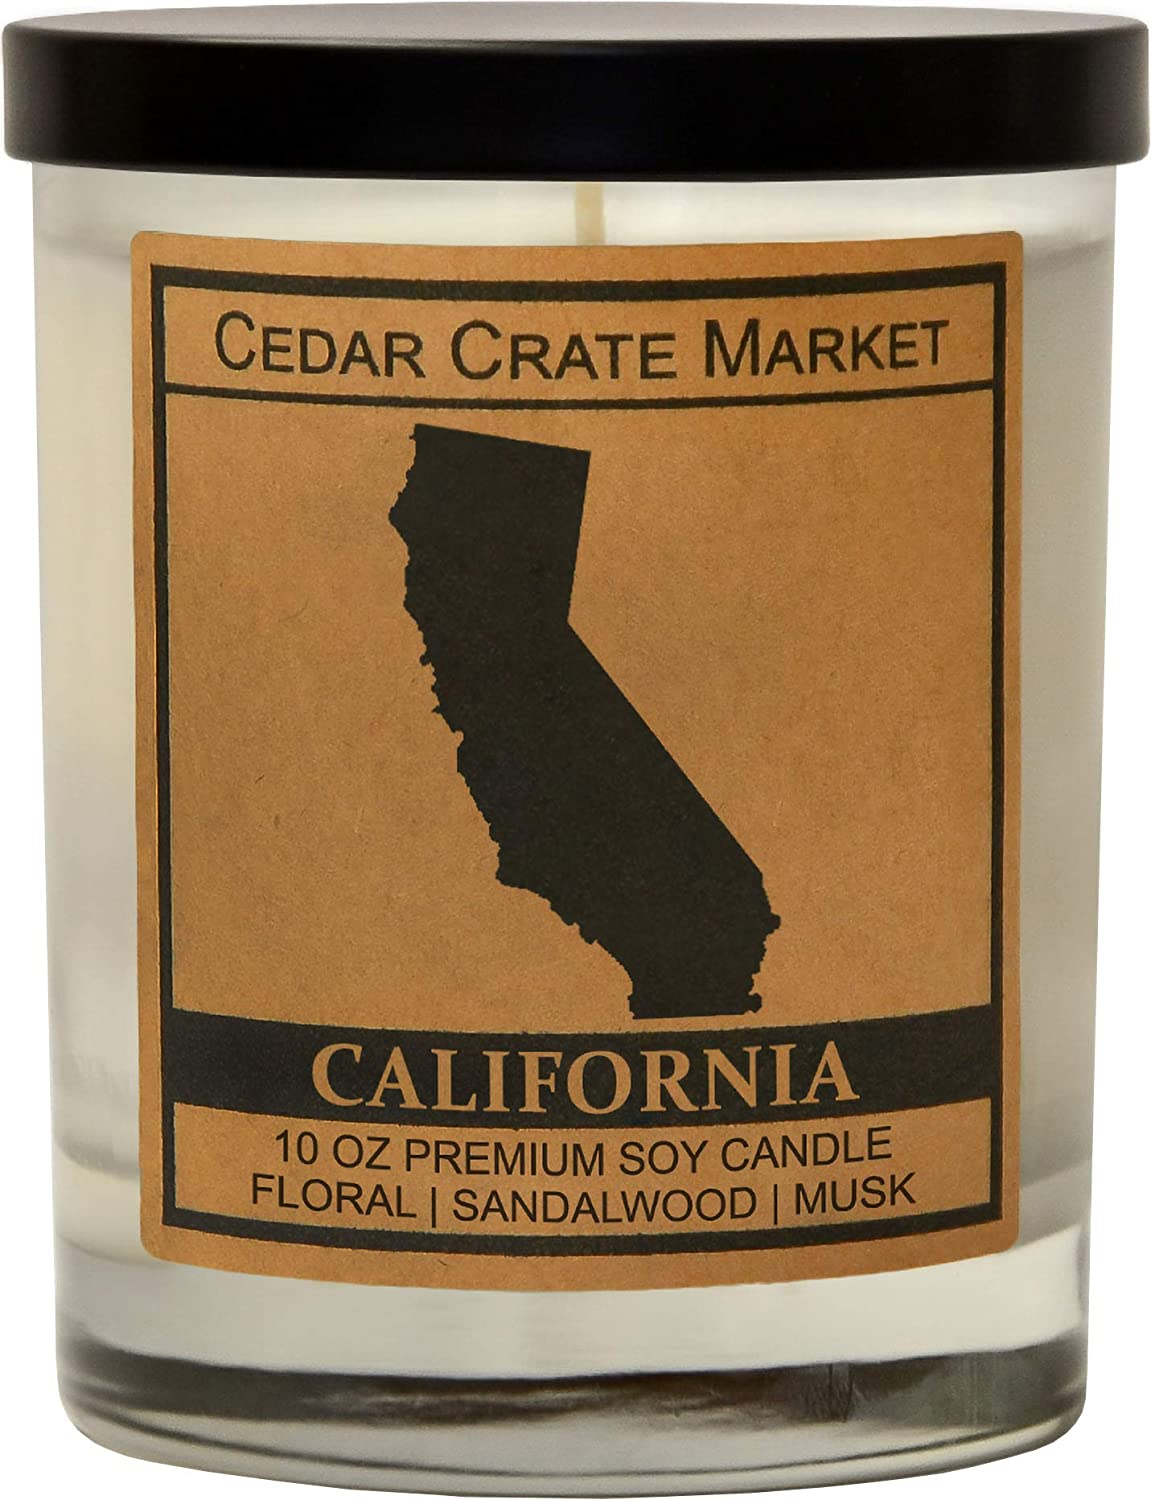 California Kraft Label Scented Soy Candle, Floral, Sandalwood, Musk, 10 Oz. Glass Jar Candle, Made in The USA, Decorative Candles, Going Away Gifts for Friends, State Candles